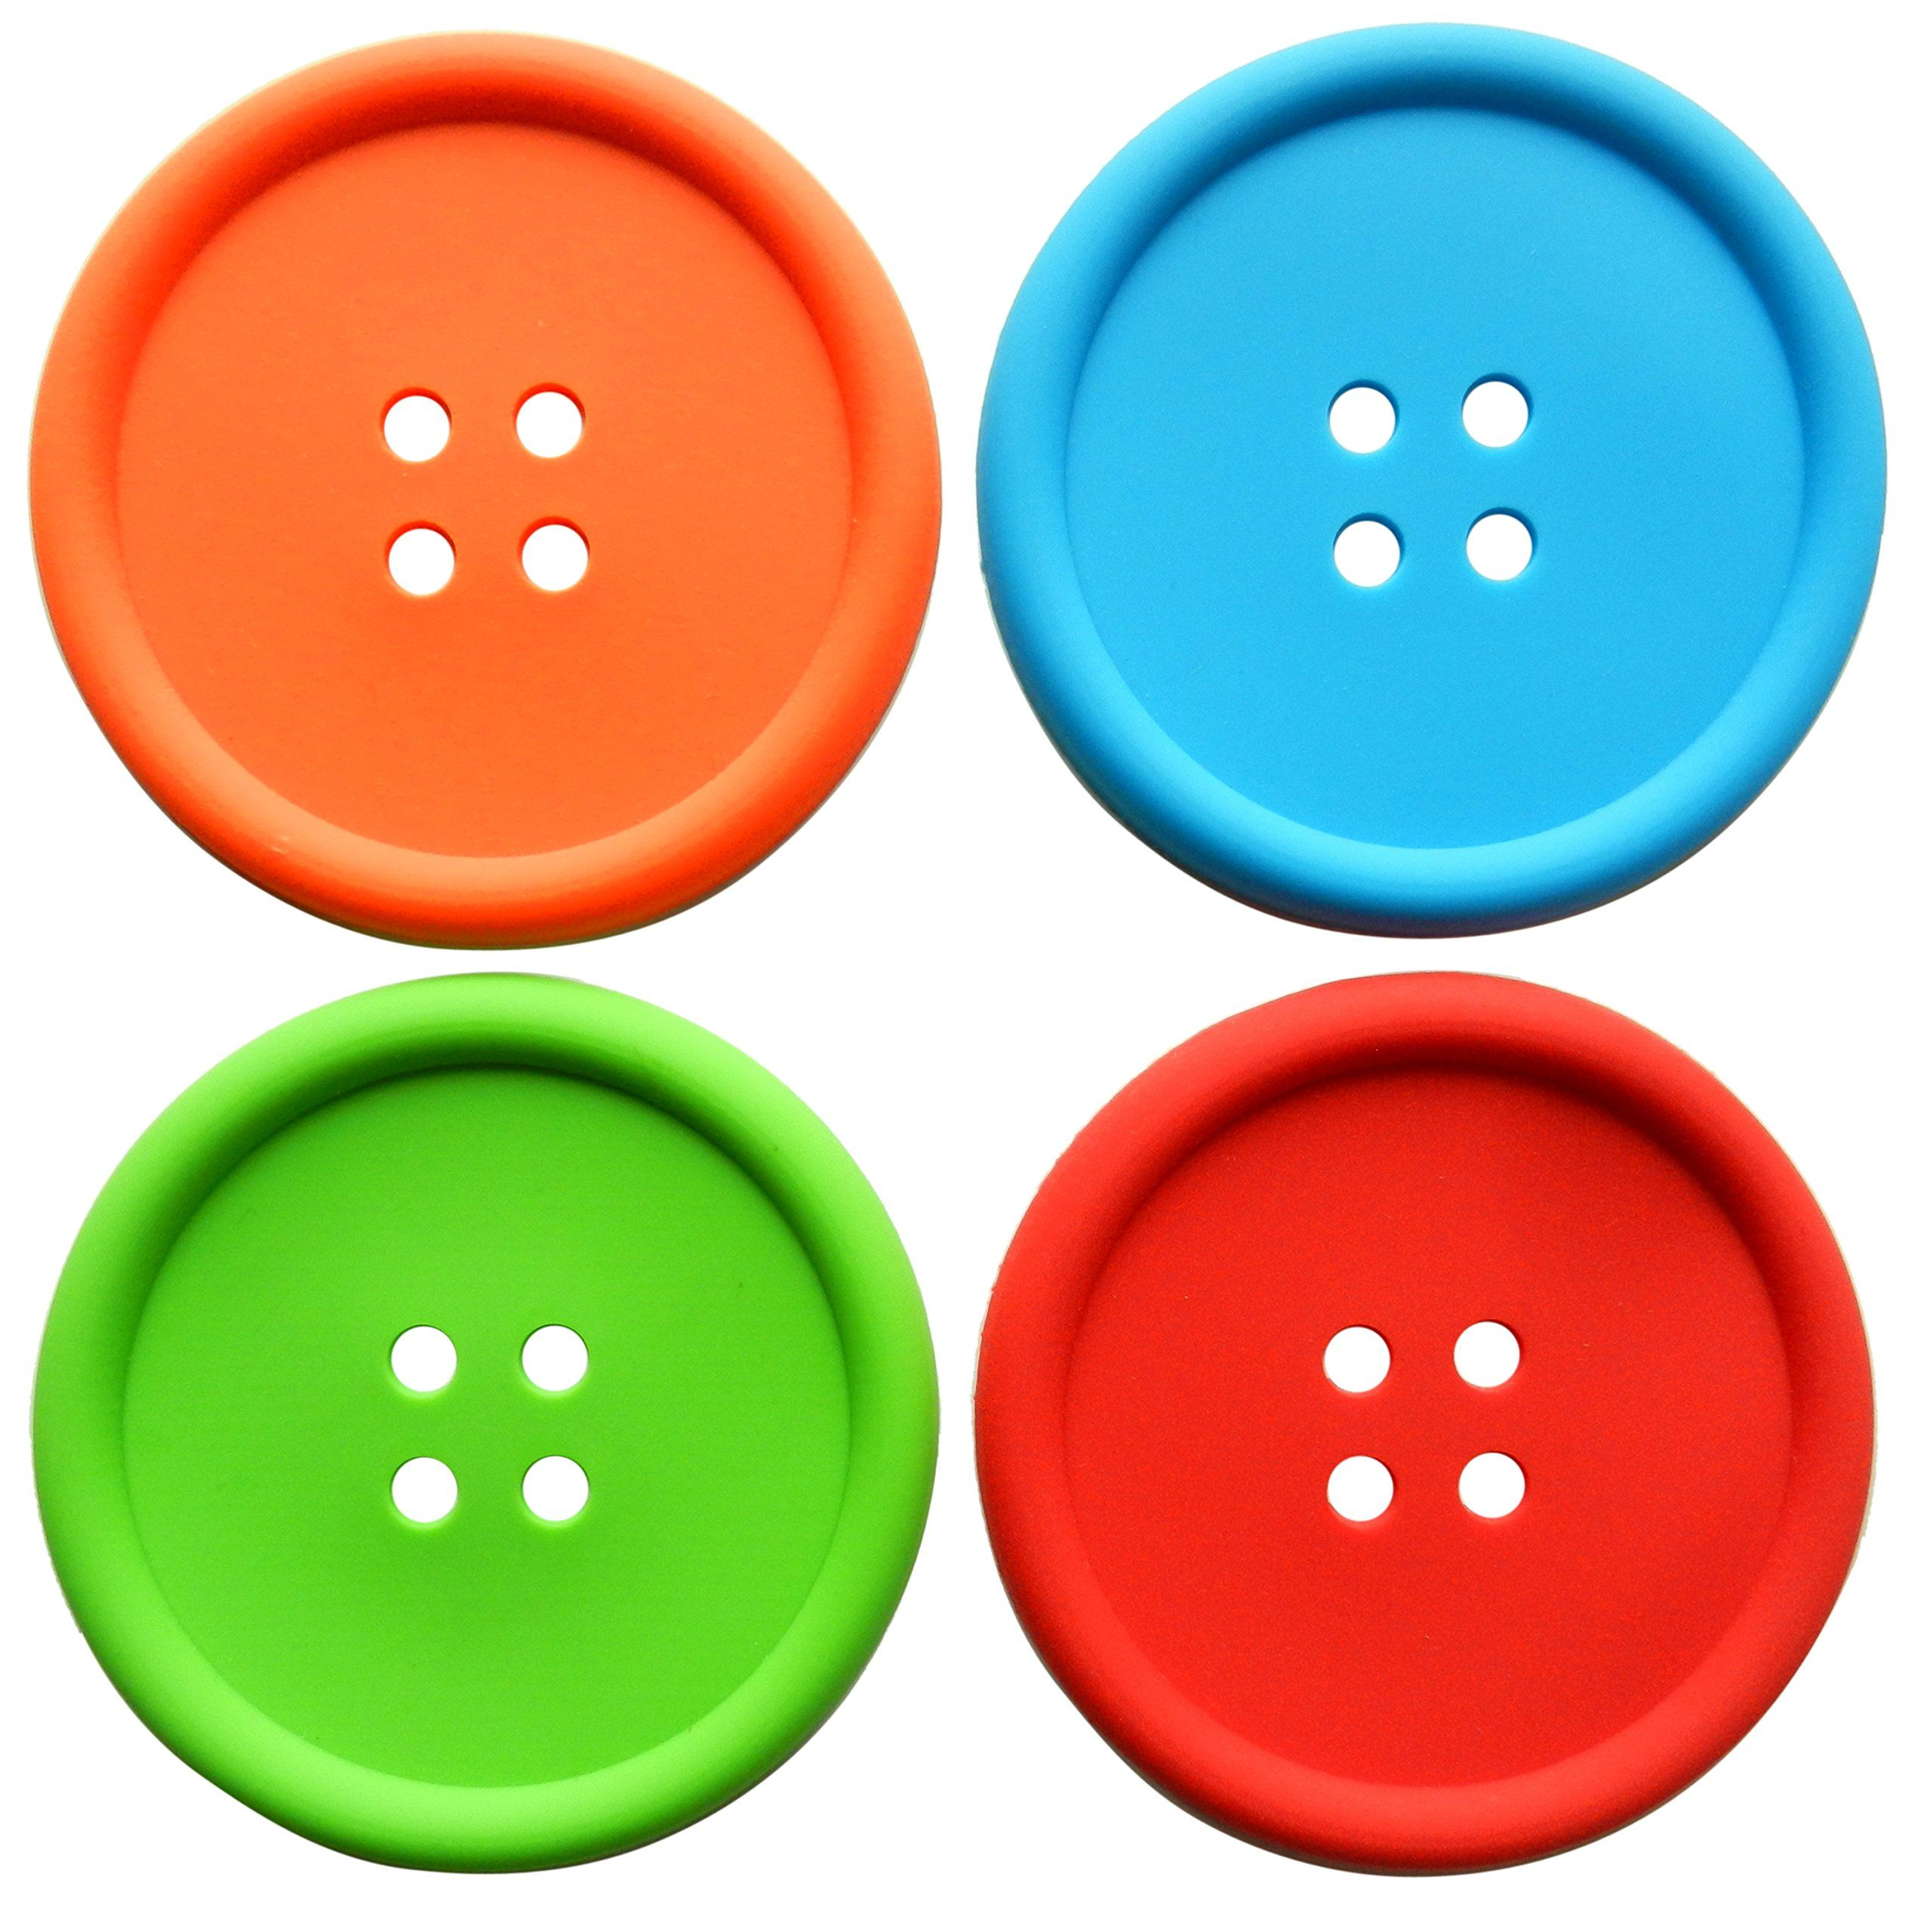 Coasters for drinks, set of 4,colorful table protection